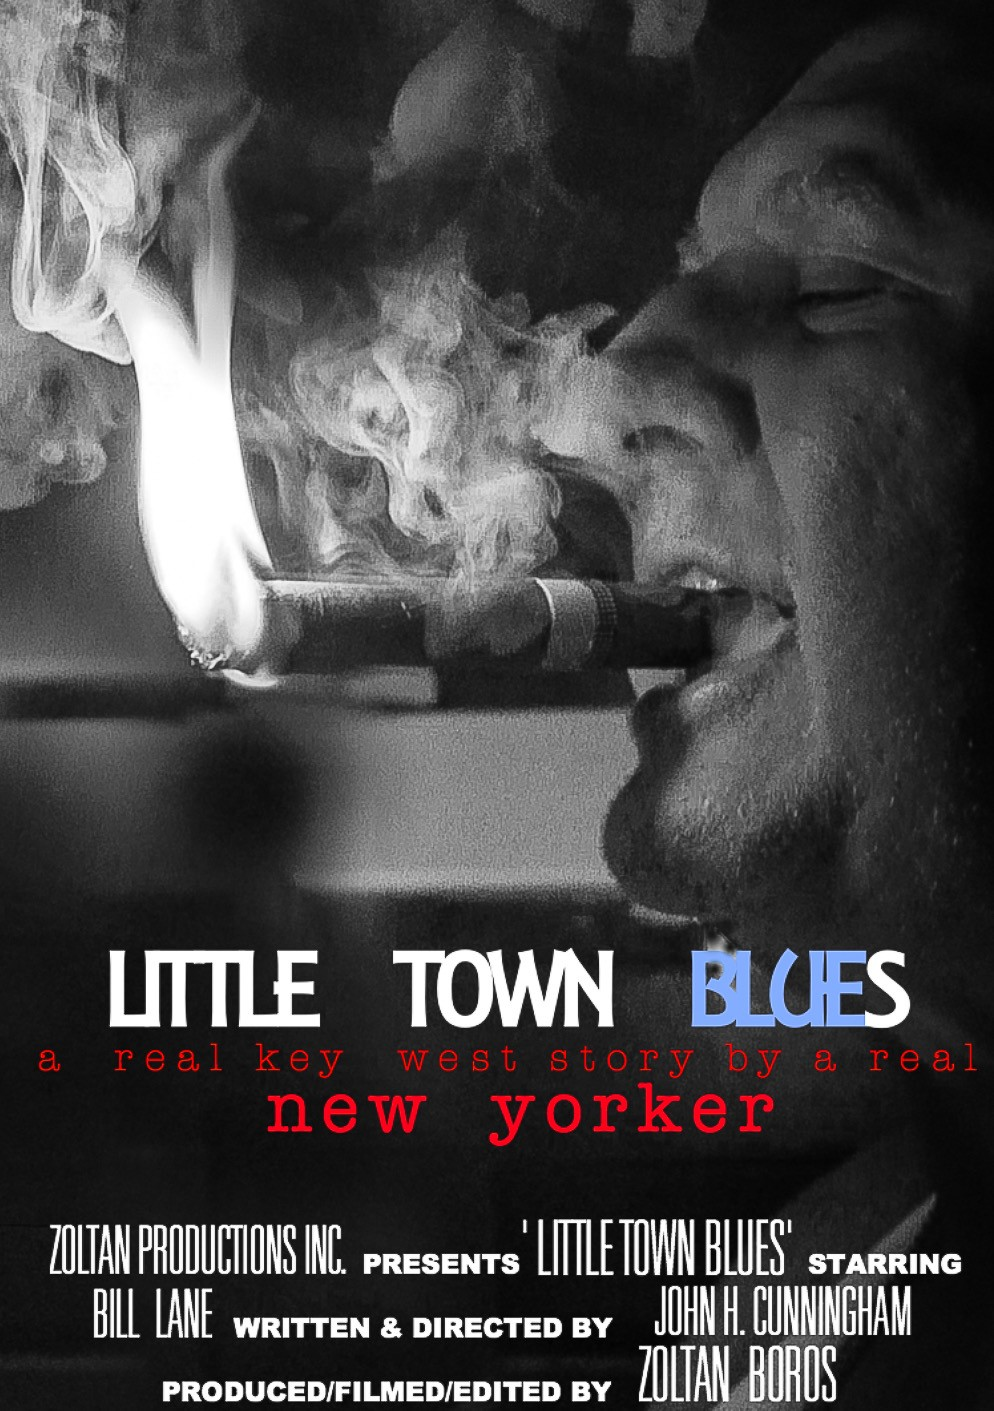 LITTLE TOWN BLUES at the Key West Film Festival